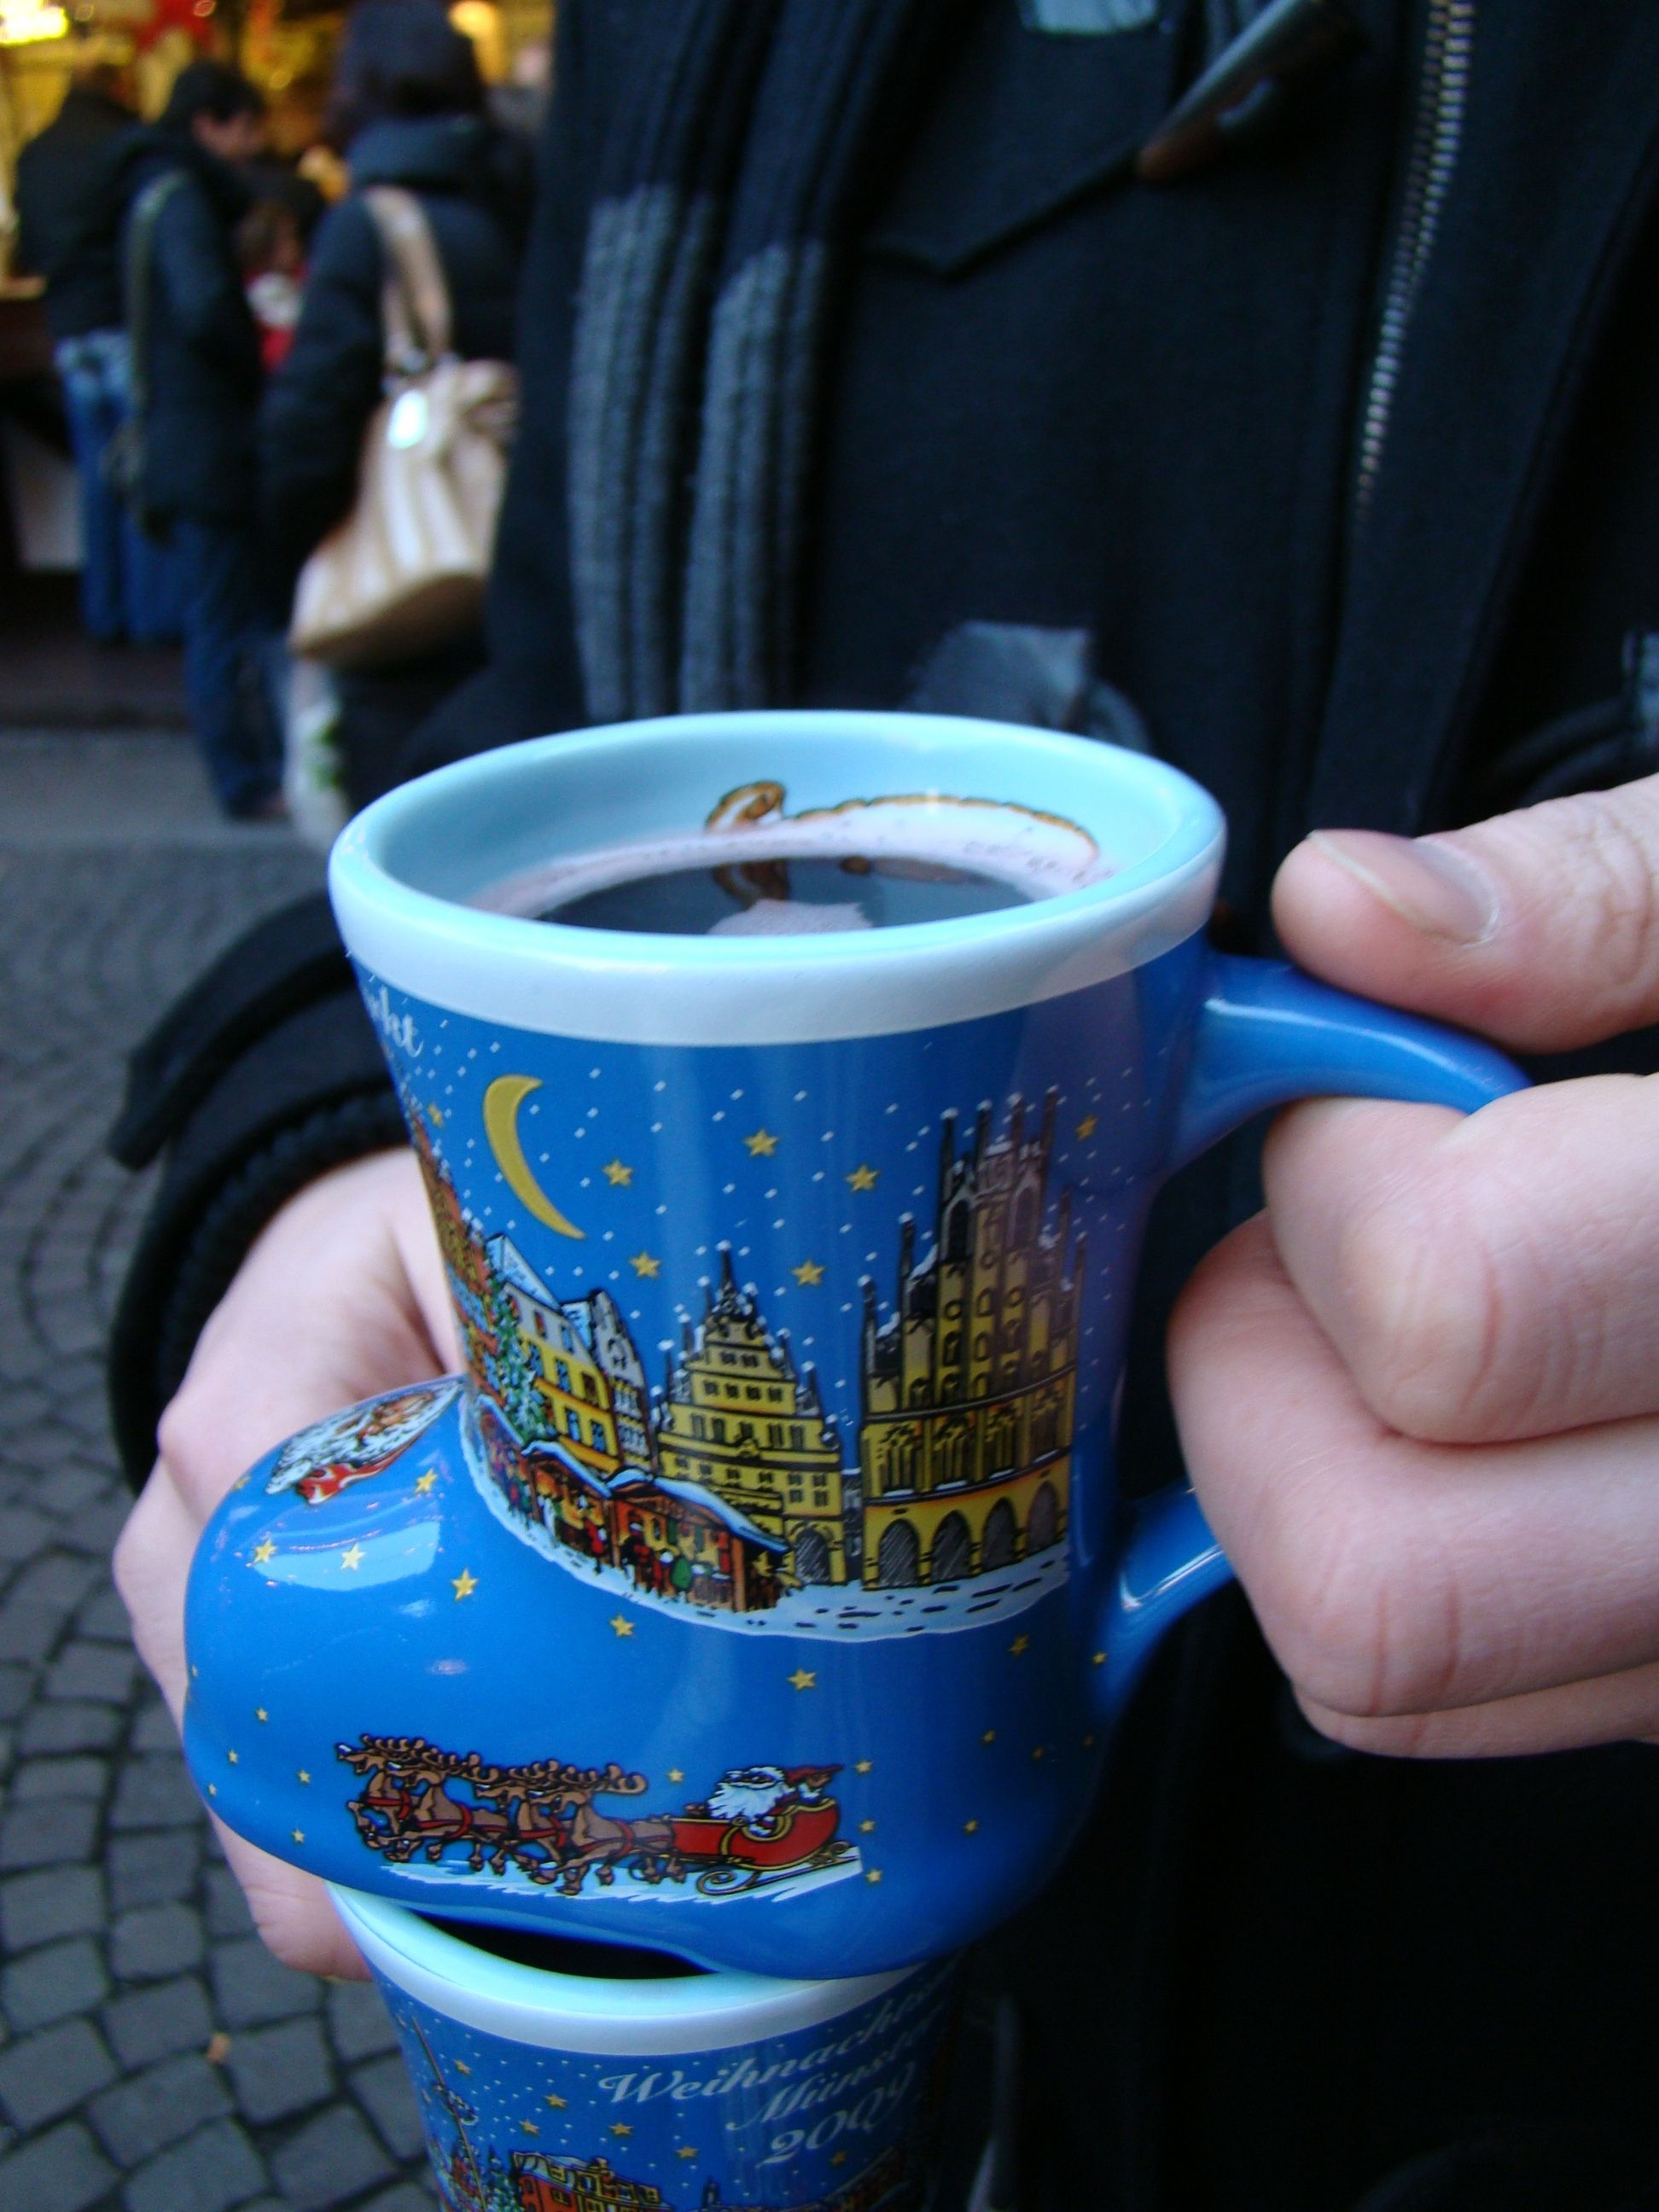 Glühwein (Mulled wine) at a christmas market in Germany